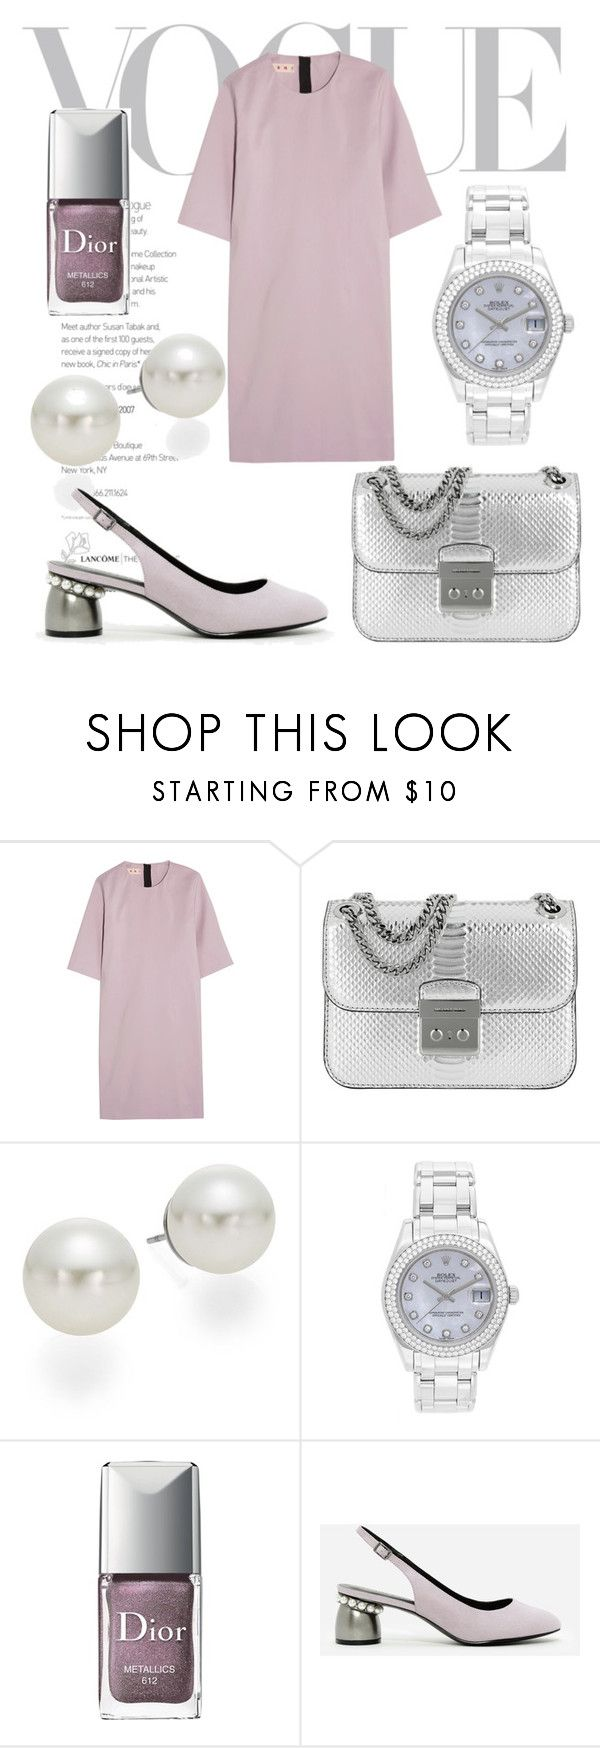 """""""An Elegant Occasion"""" by doragal ❤ liked on Polyvore featuring Marni, MICHAEL Michael Kors, AK Anne Klein, Rolex, Christian Dior, CHARLES & KEITH, Silver, metallic, pearl and lavender"""